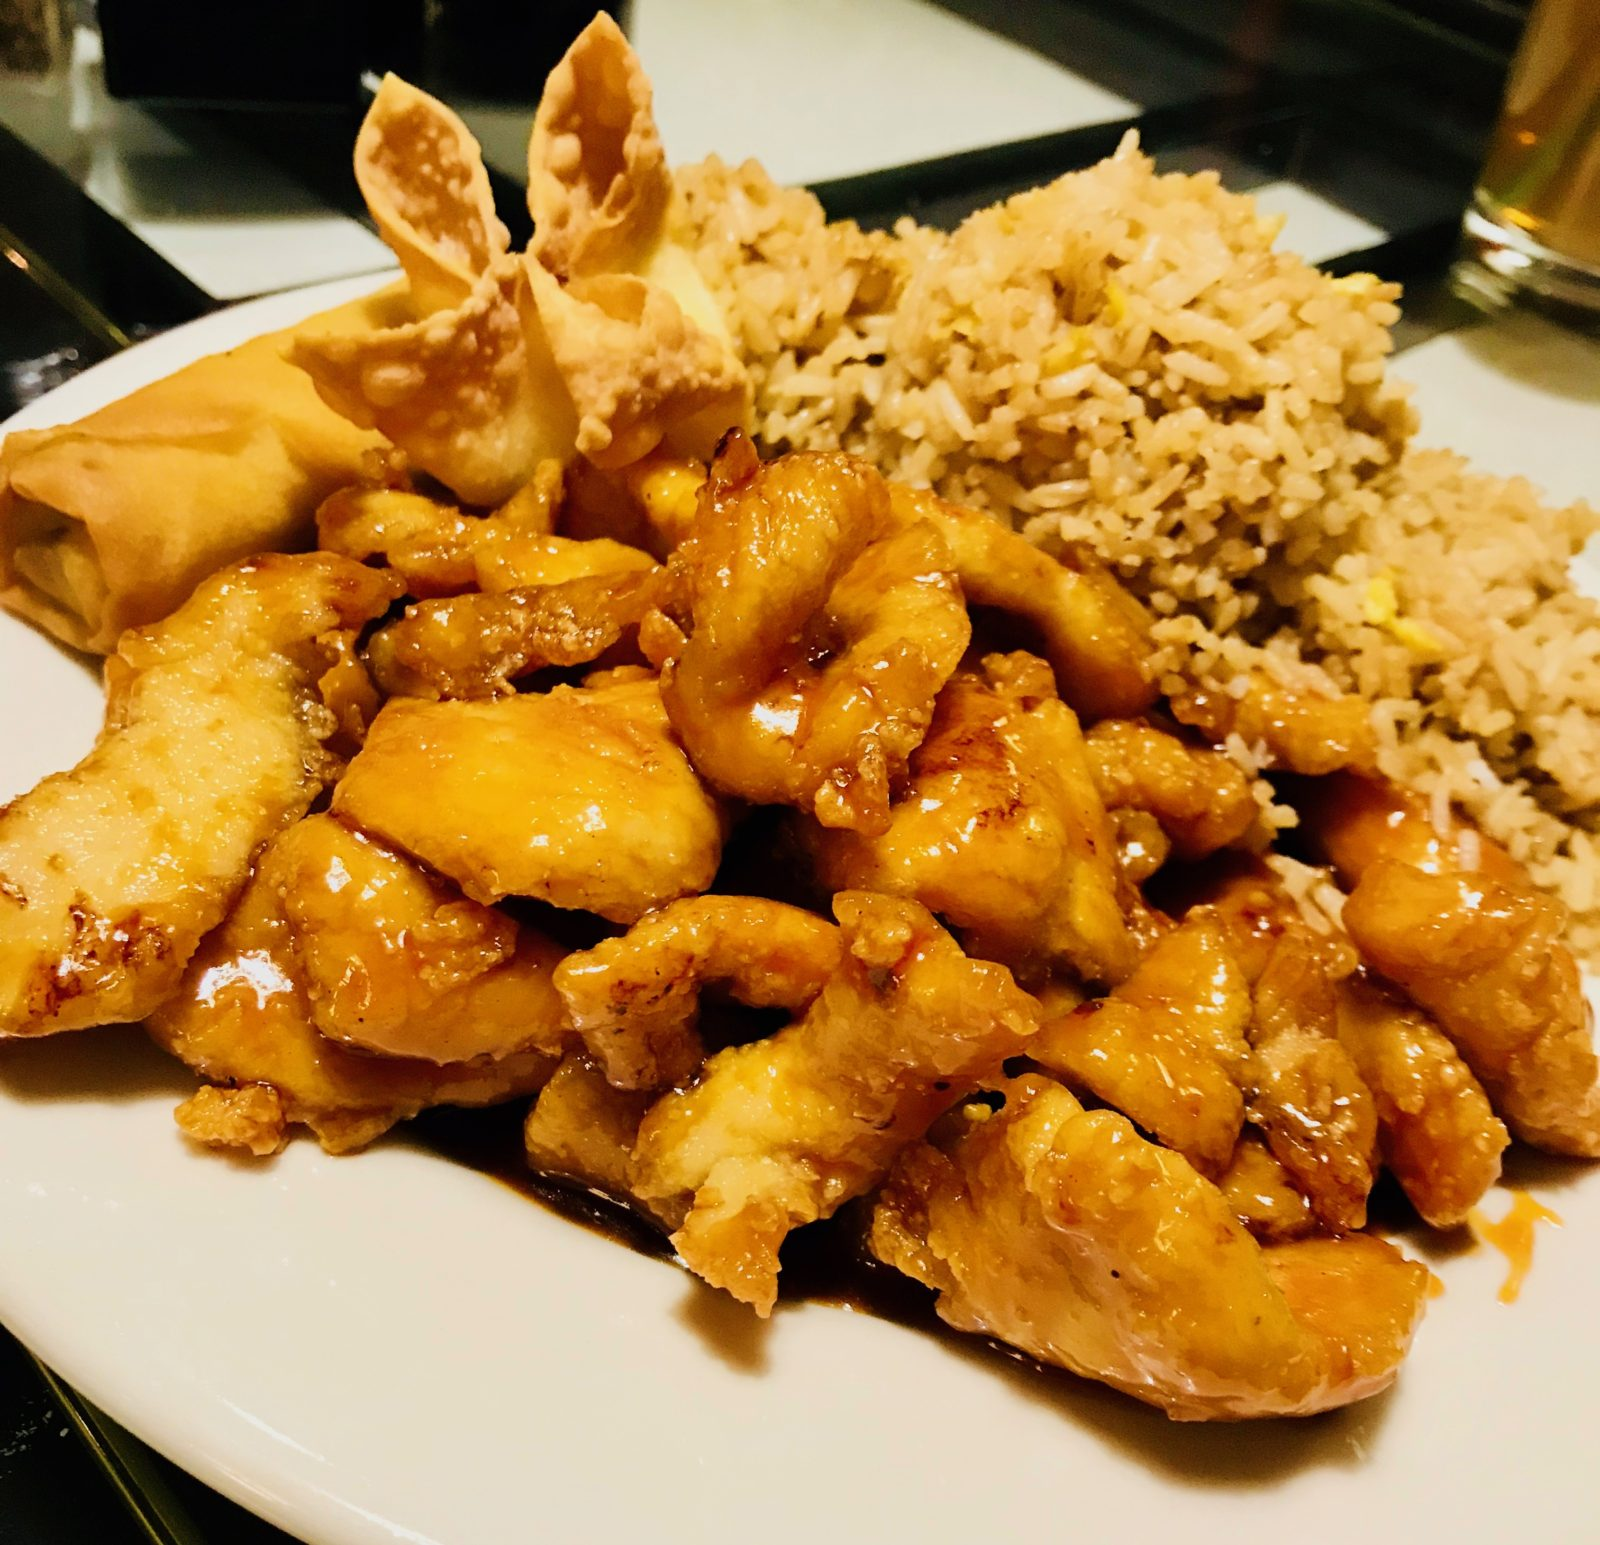 Pick of the Week - Bamboo Cafe - Orange Chicken Dinner Combo with Fried Rice